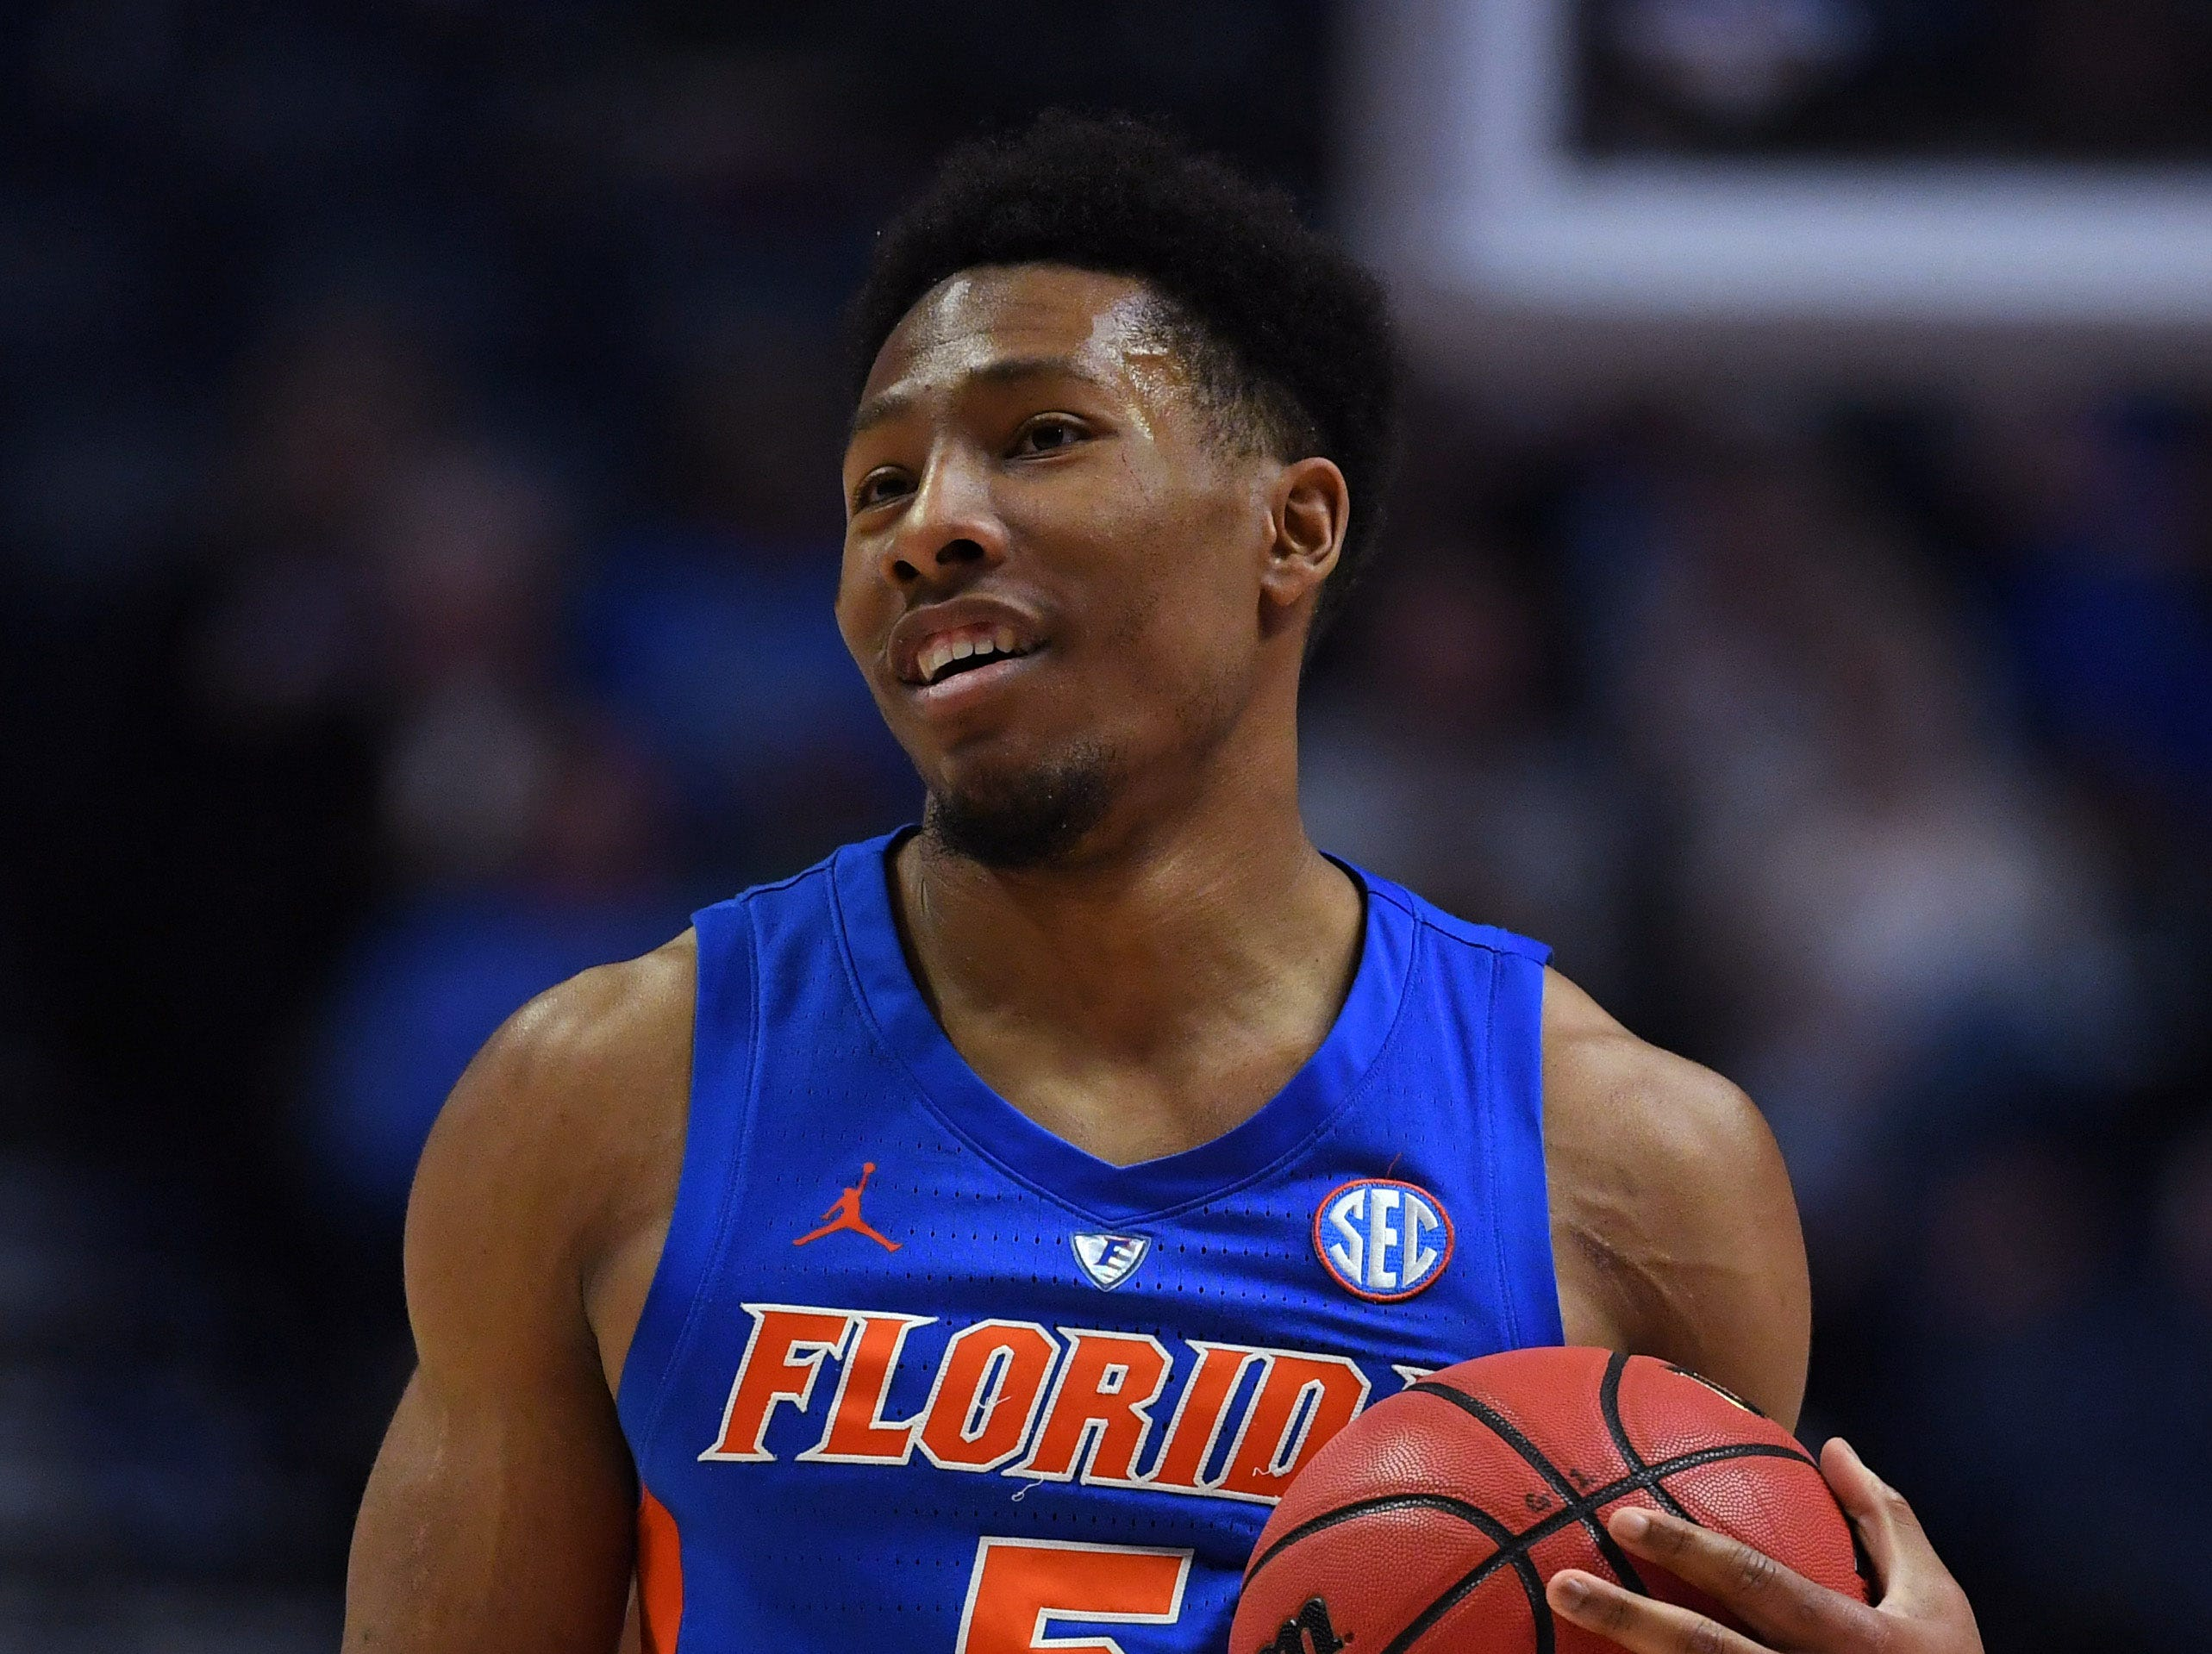 Mar 16, 2019; Nashville, TN, USA; Florida Gators guard KeVaughn Allen (5) looks on from the court during the first half against the Auburn Tigers in the SEC conference tournament at Bridgestone Arena. Mandatory Credit: Christopher Hanewinckel-USA TODAY Sports